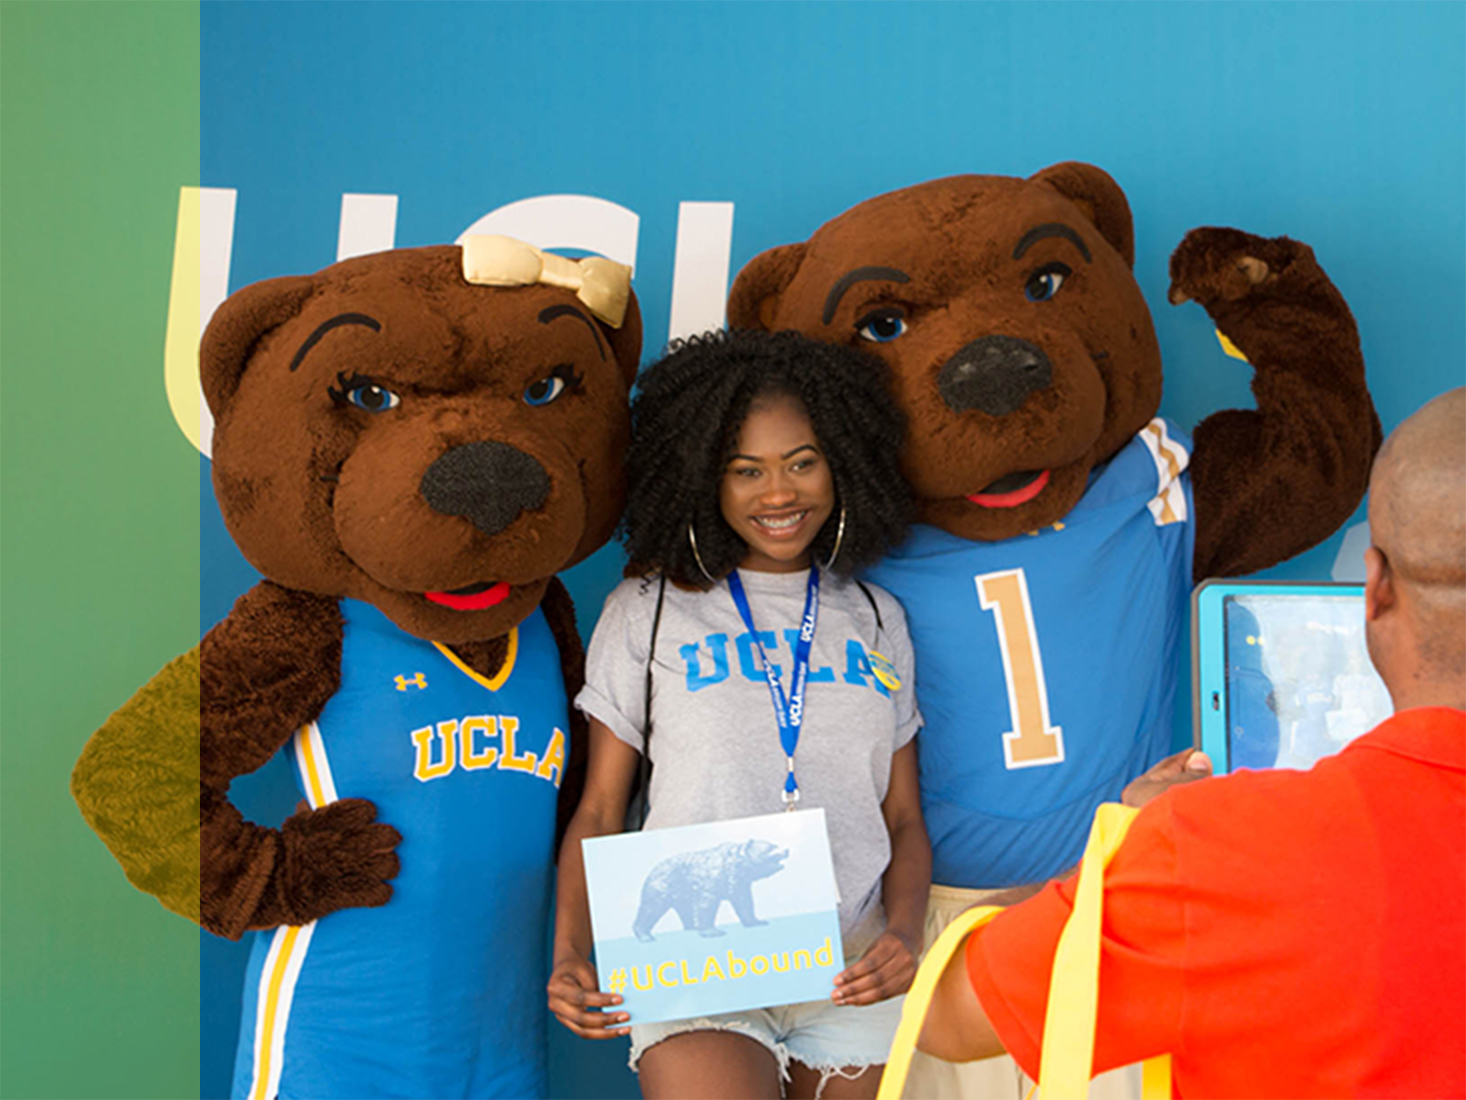 A female student holding a #UCLAbound sign poses with Joe and Josie Bruin.